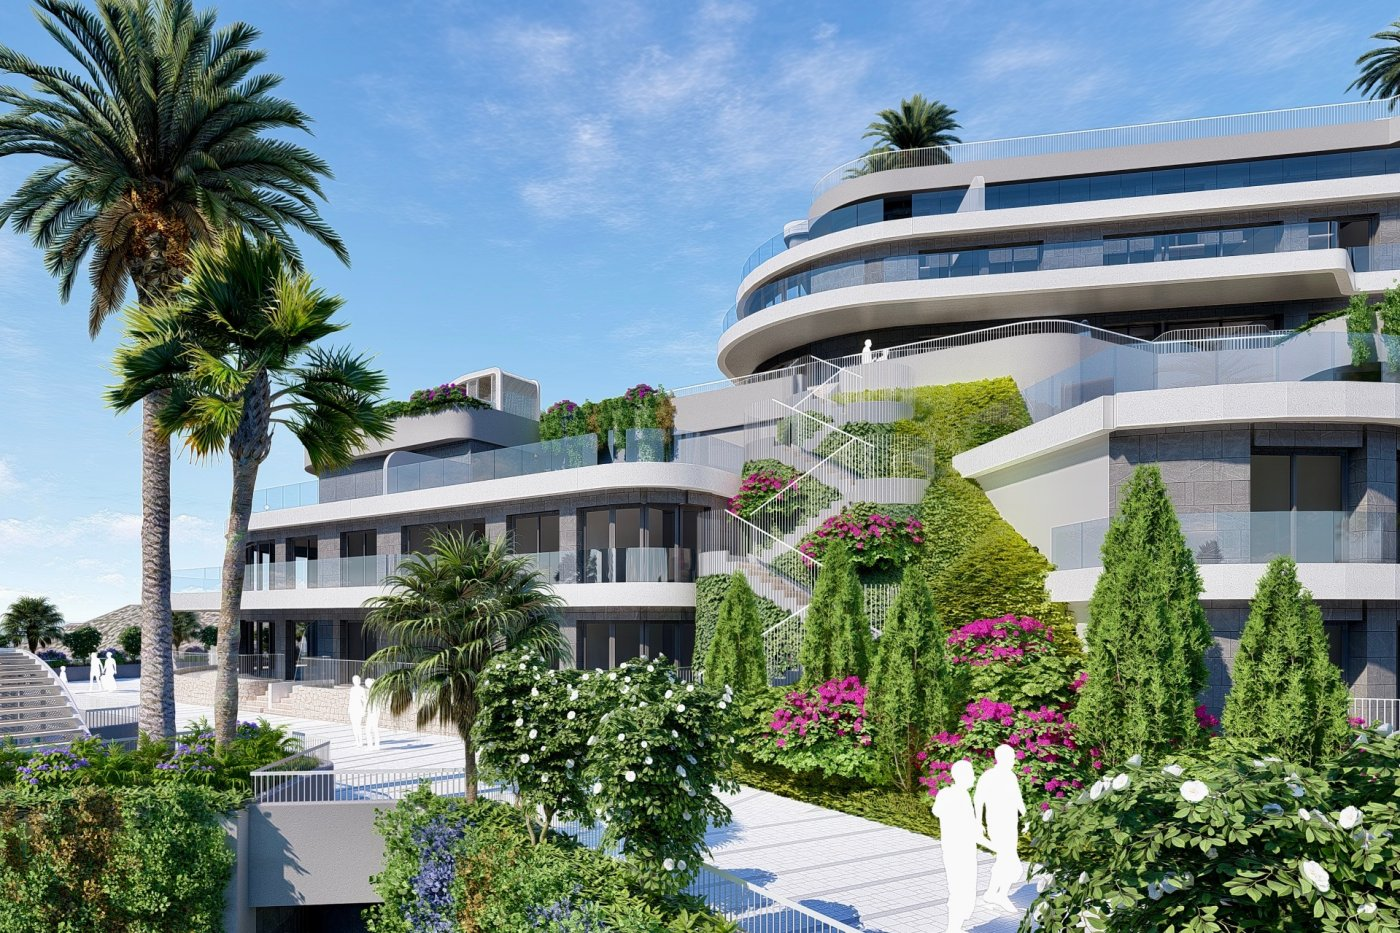 Gallery Image 11 of South-West facing luxury 2 bed apartment with panoramic sea views at amazing price